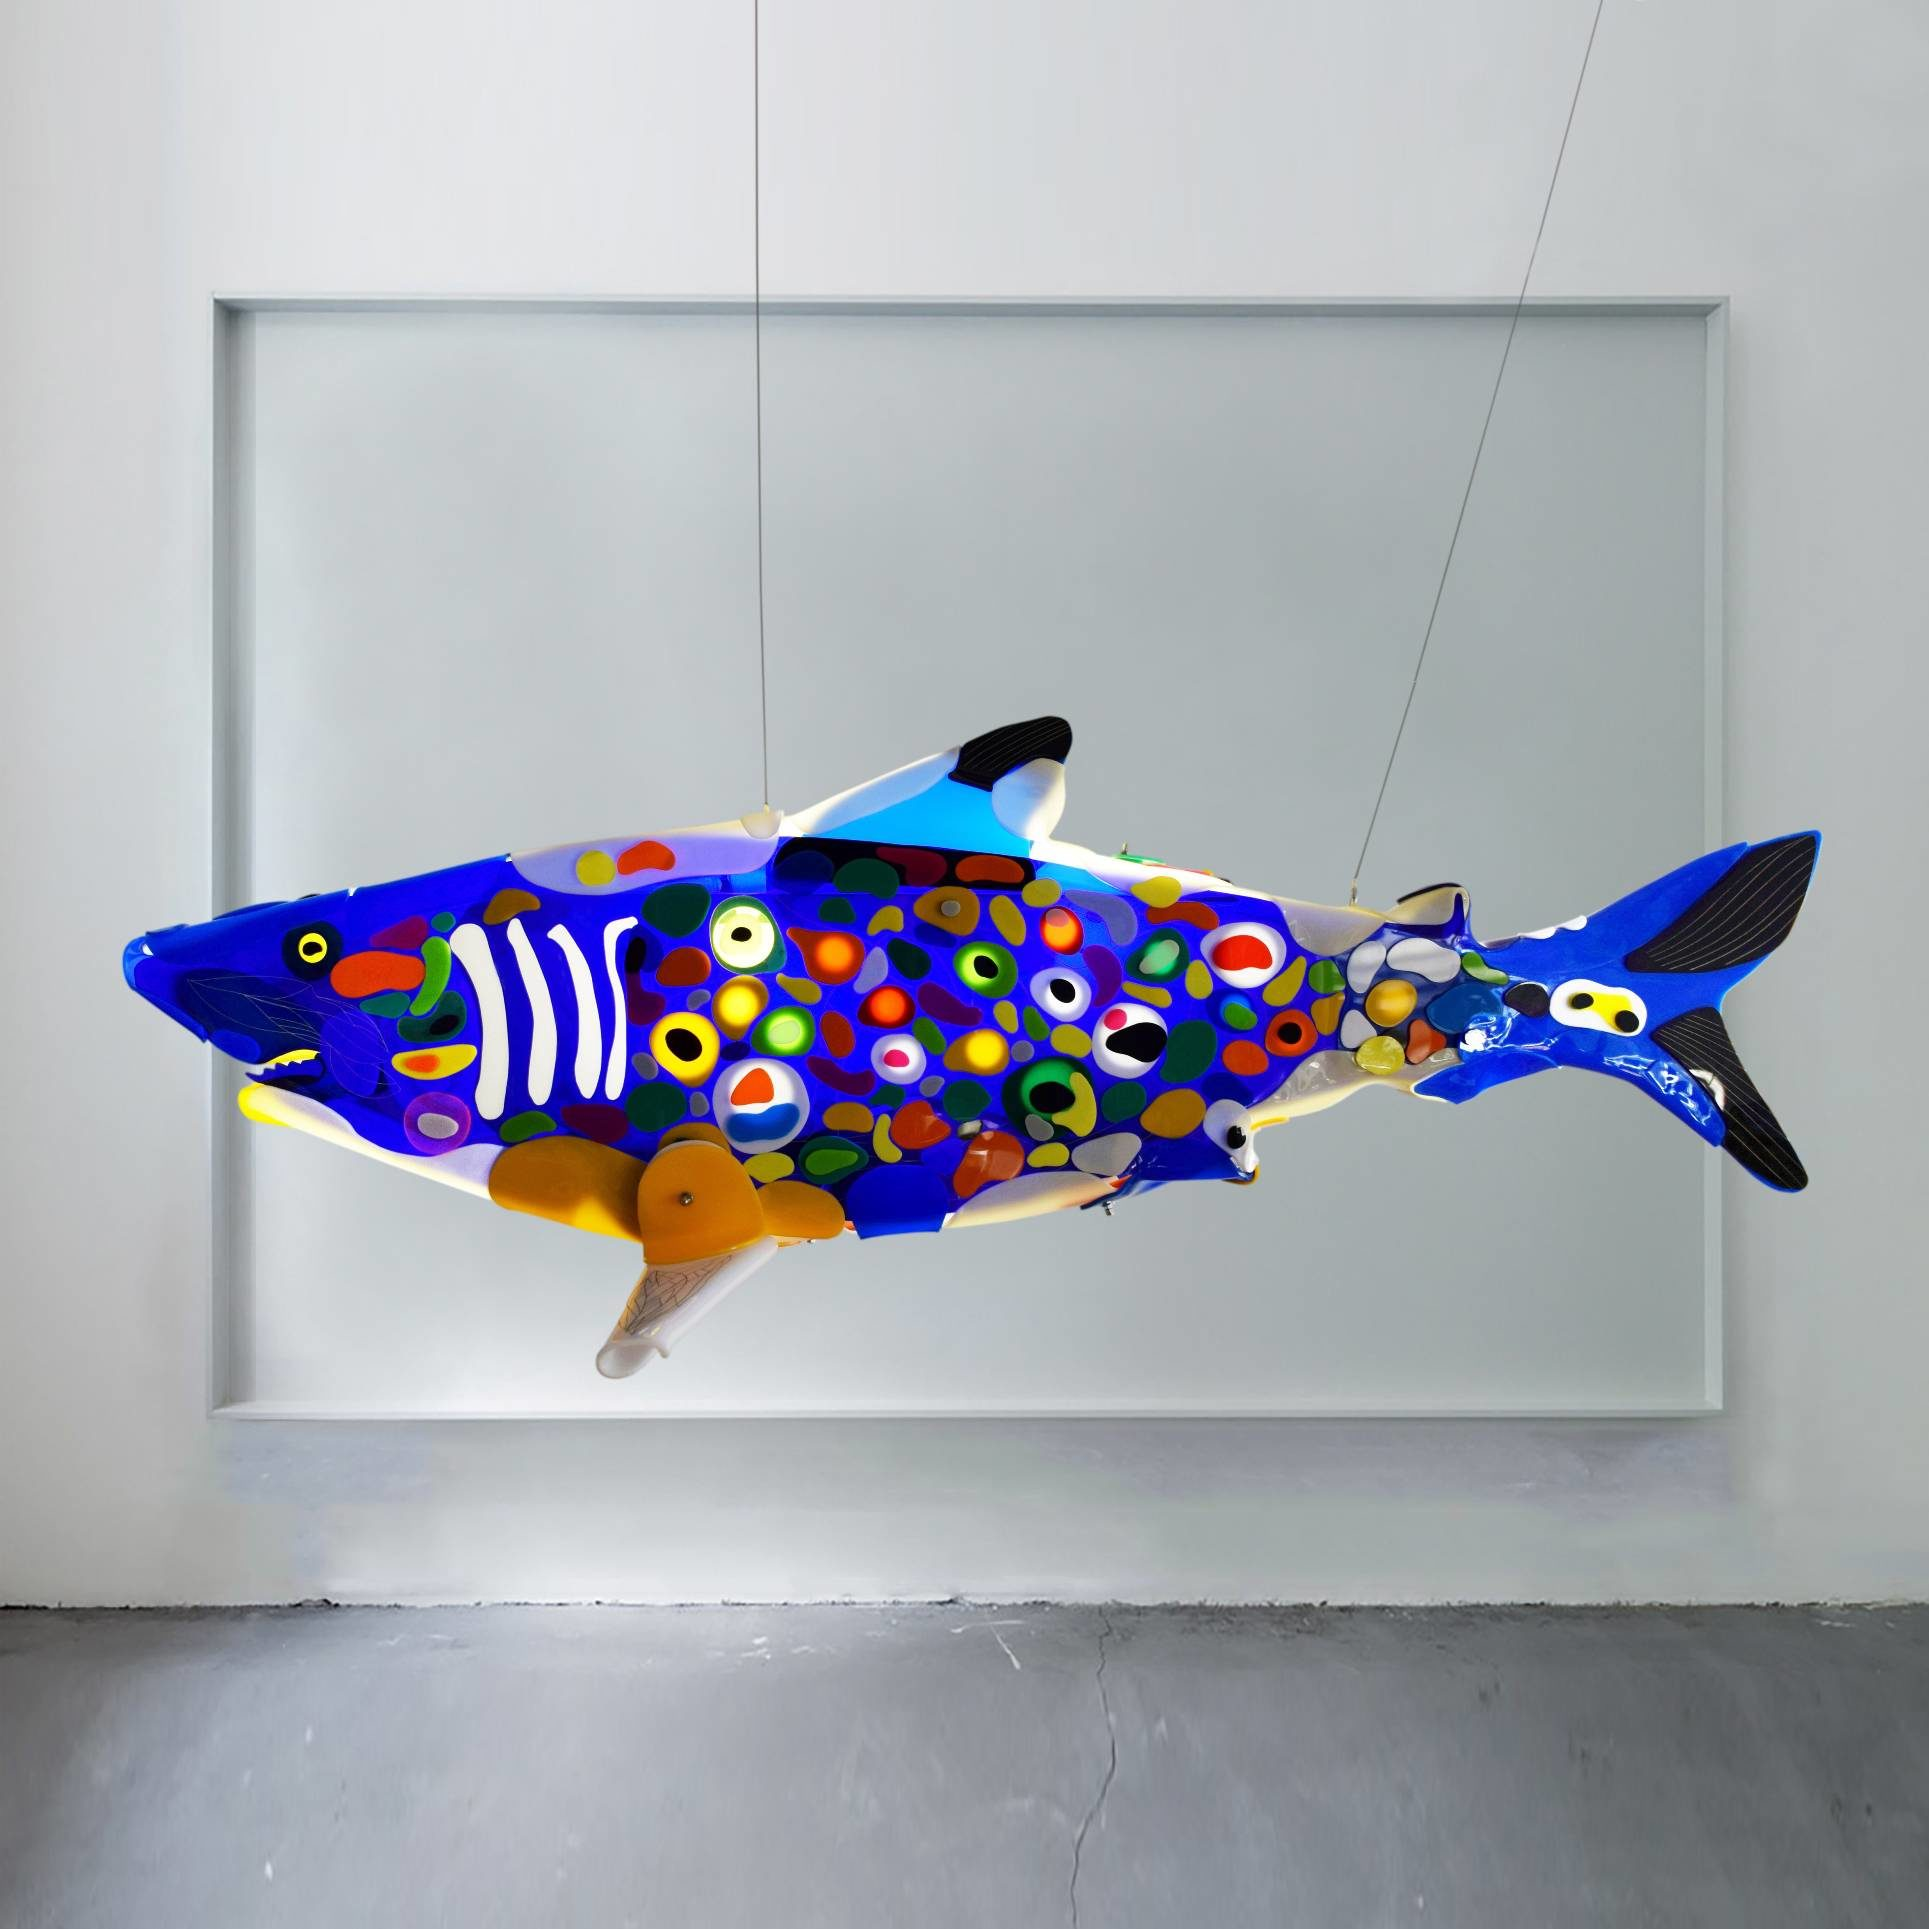 shark sculpture blue renegade by marko gavrilovic, sculptoroflight